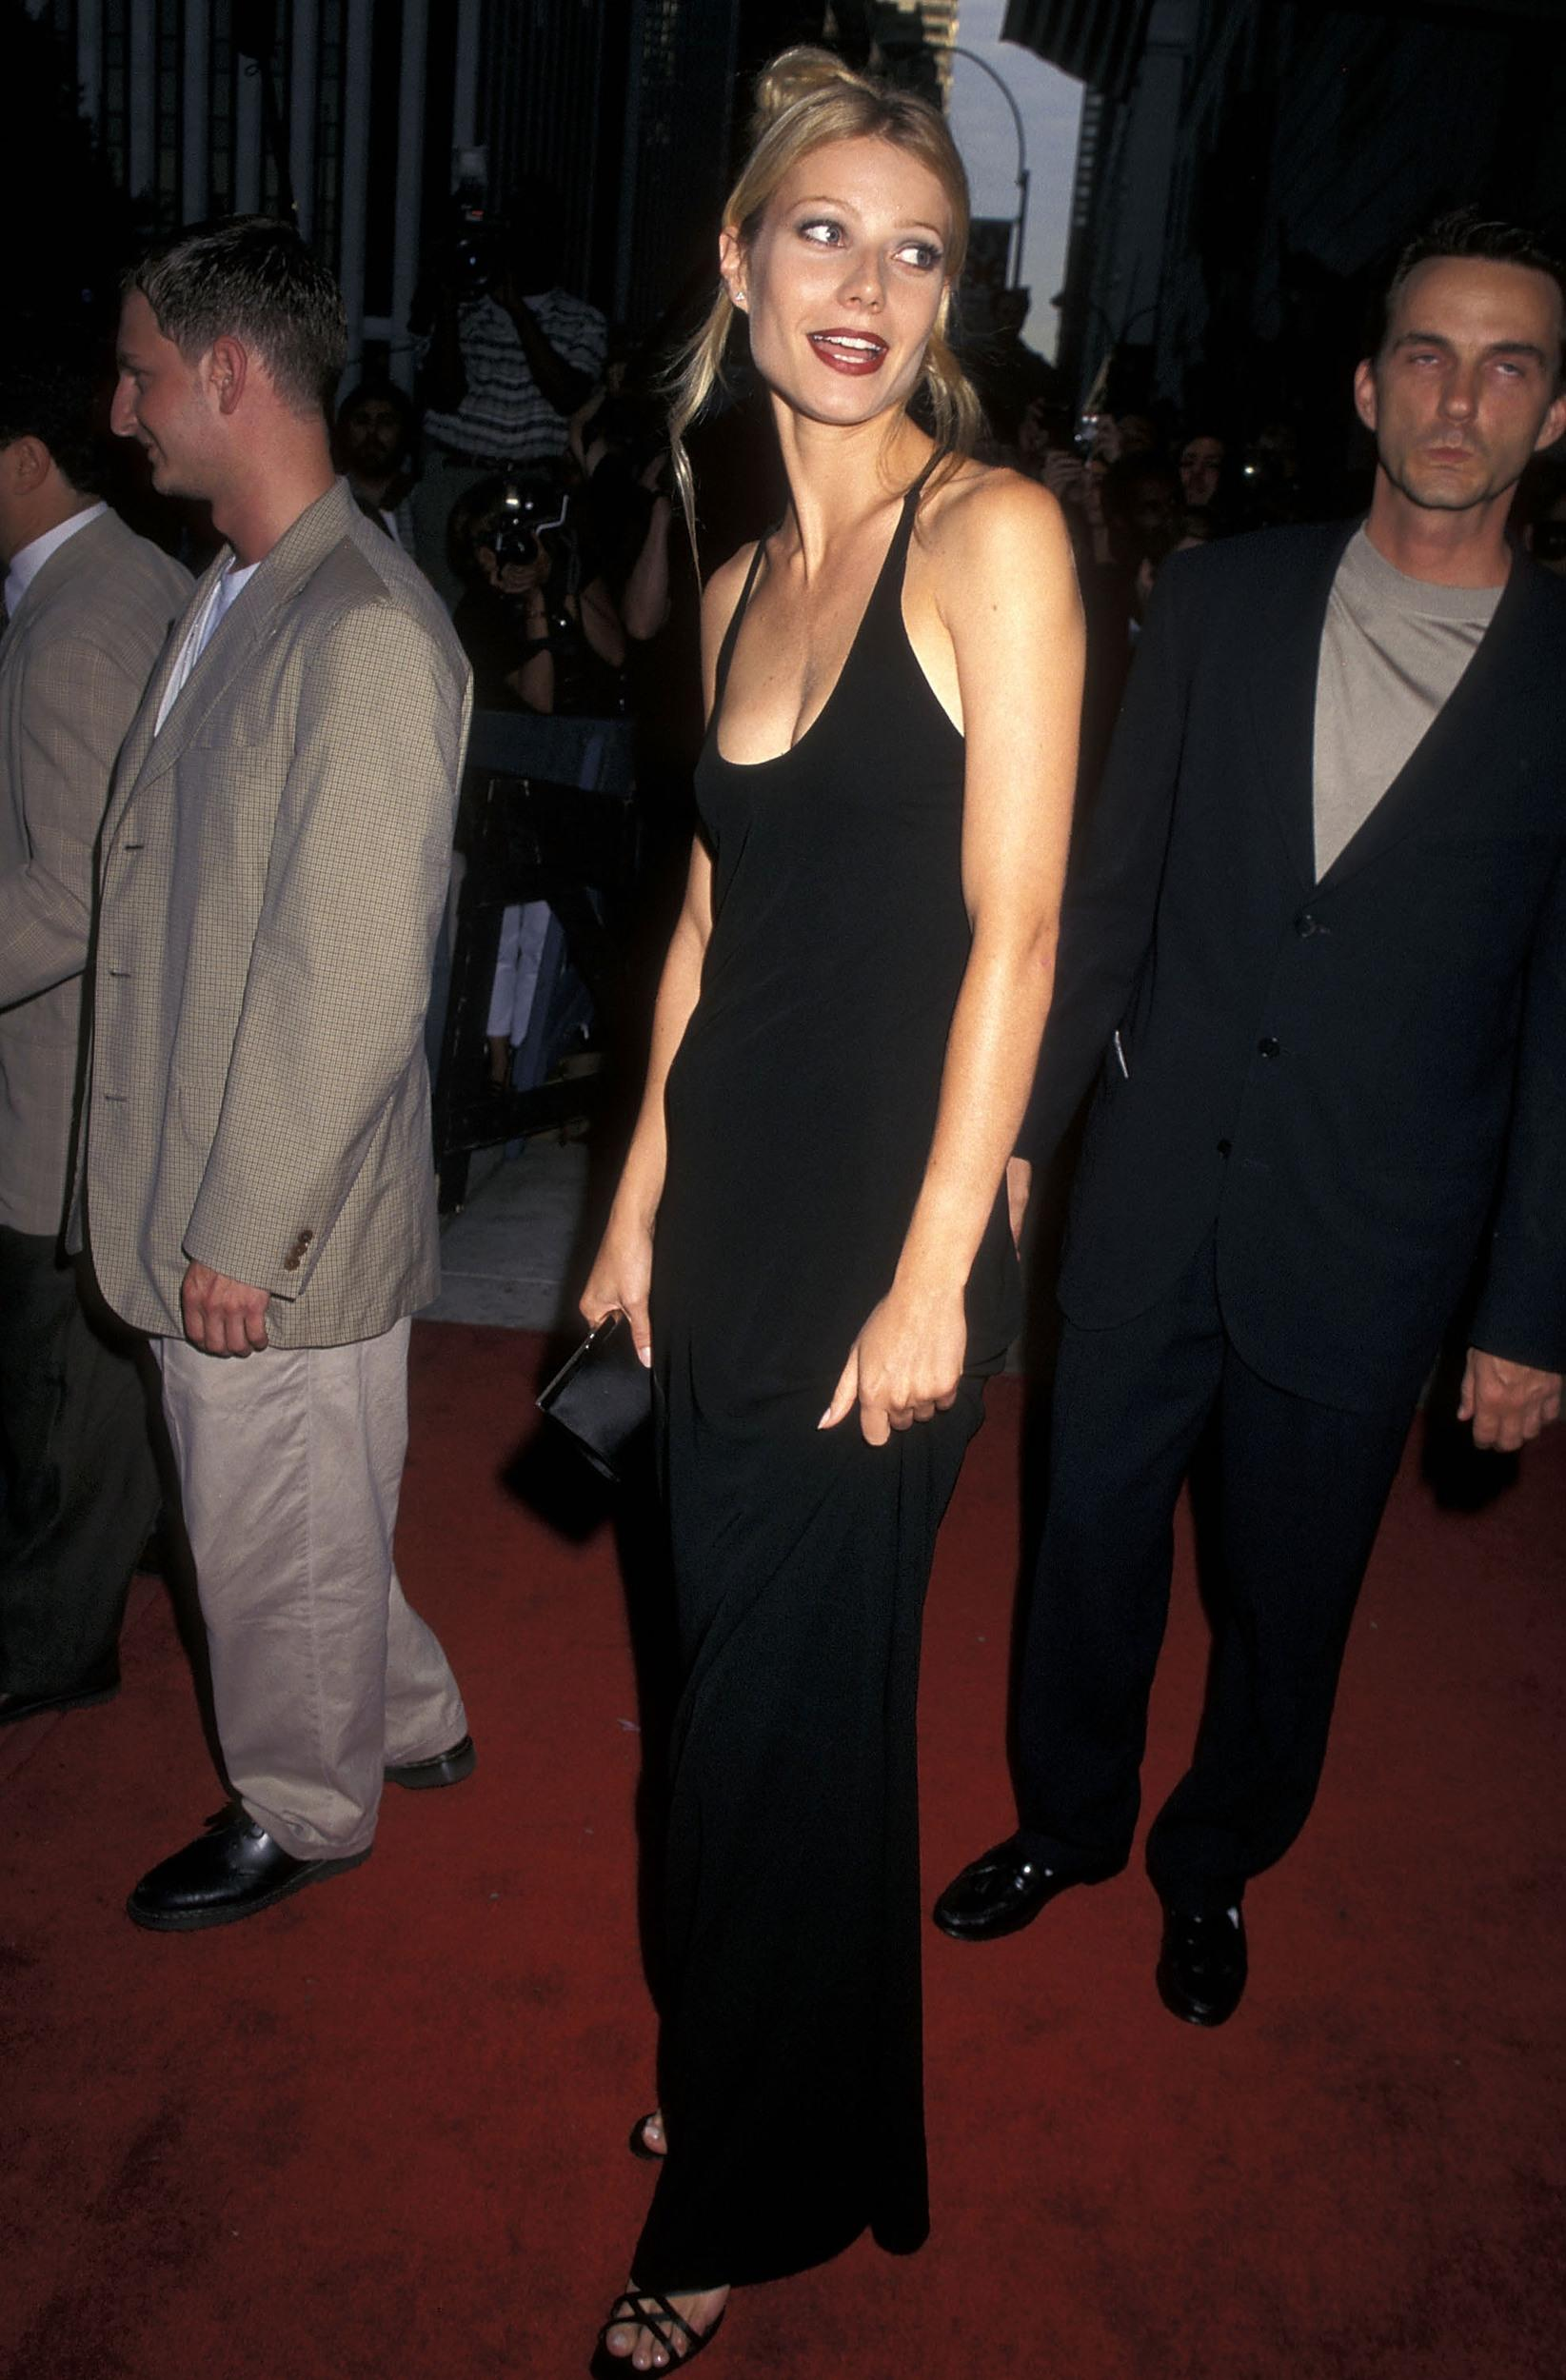 Actress Gwyneth Paltrow attends the 'Emma' New York City Premiere on July 22, 1996 at the Paris Theatre in New York City. (Photo by Ron Galella, Ltd./WireImage)